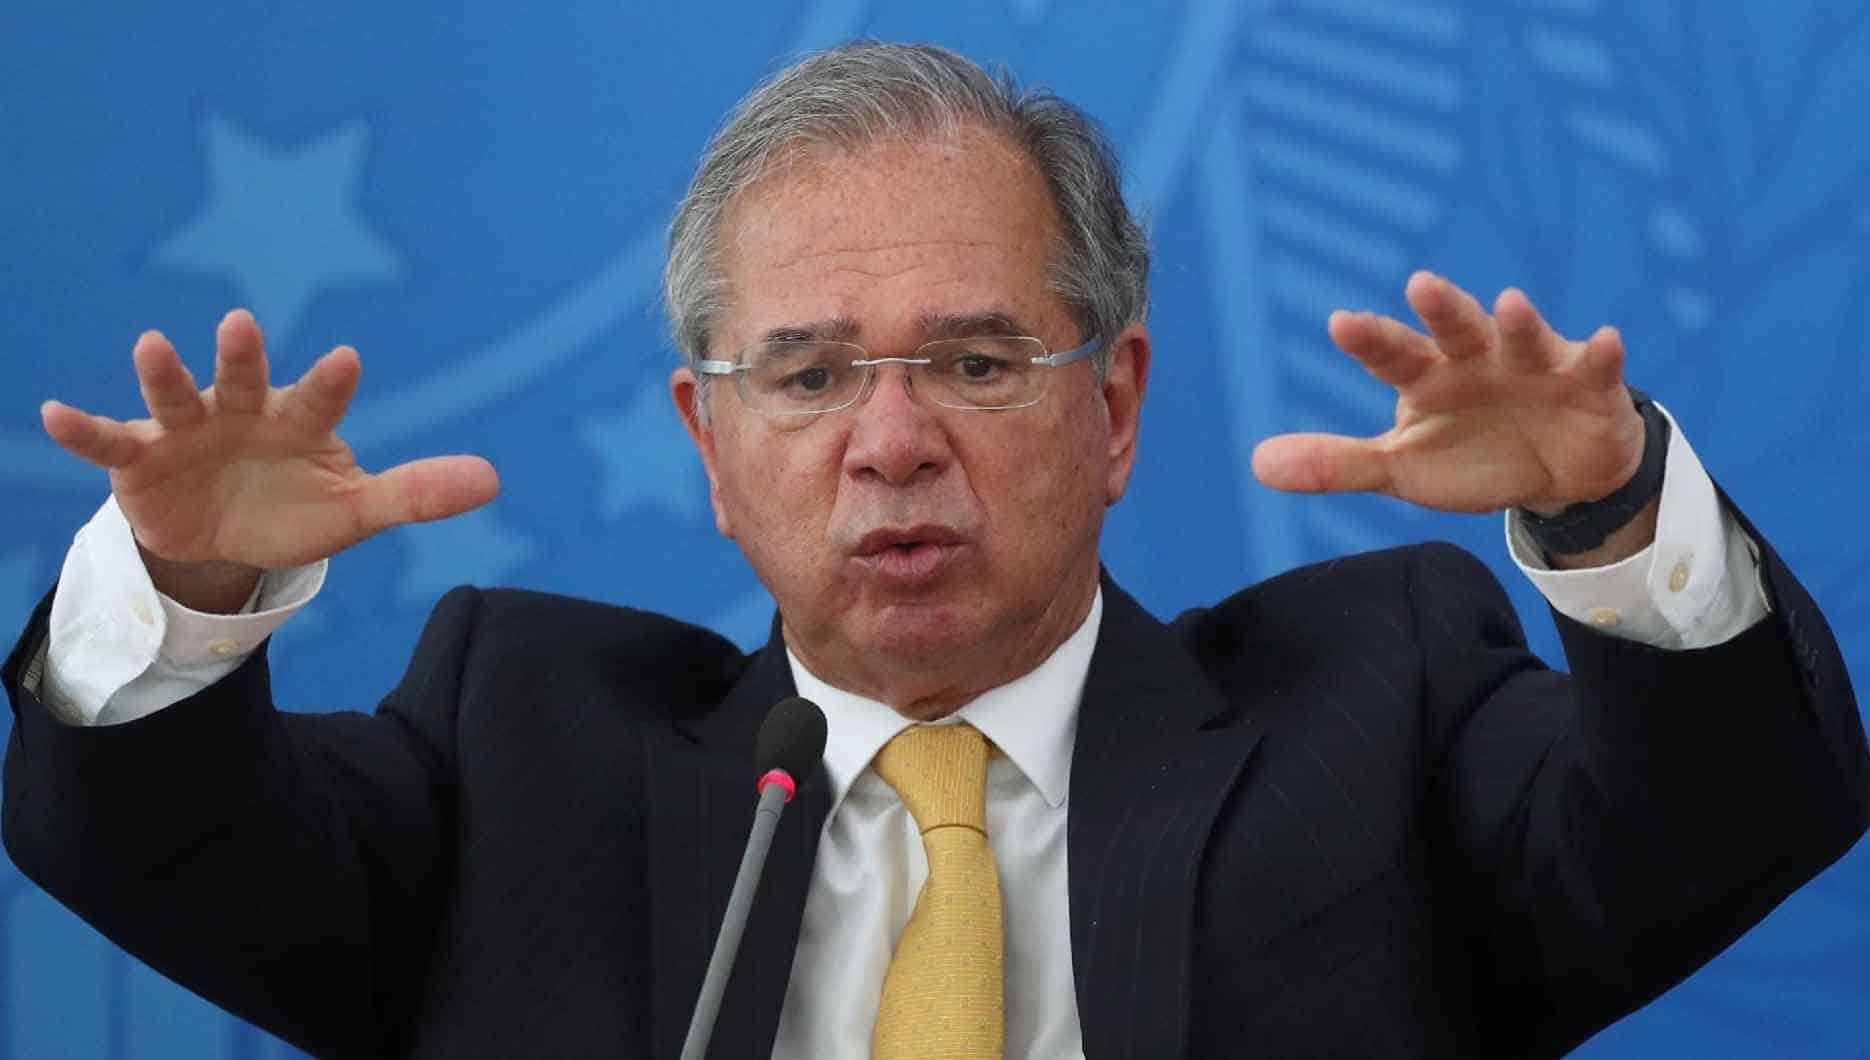 Paulo Guedes dólar